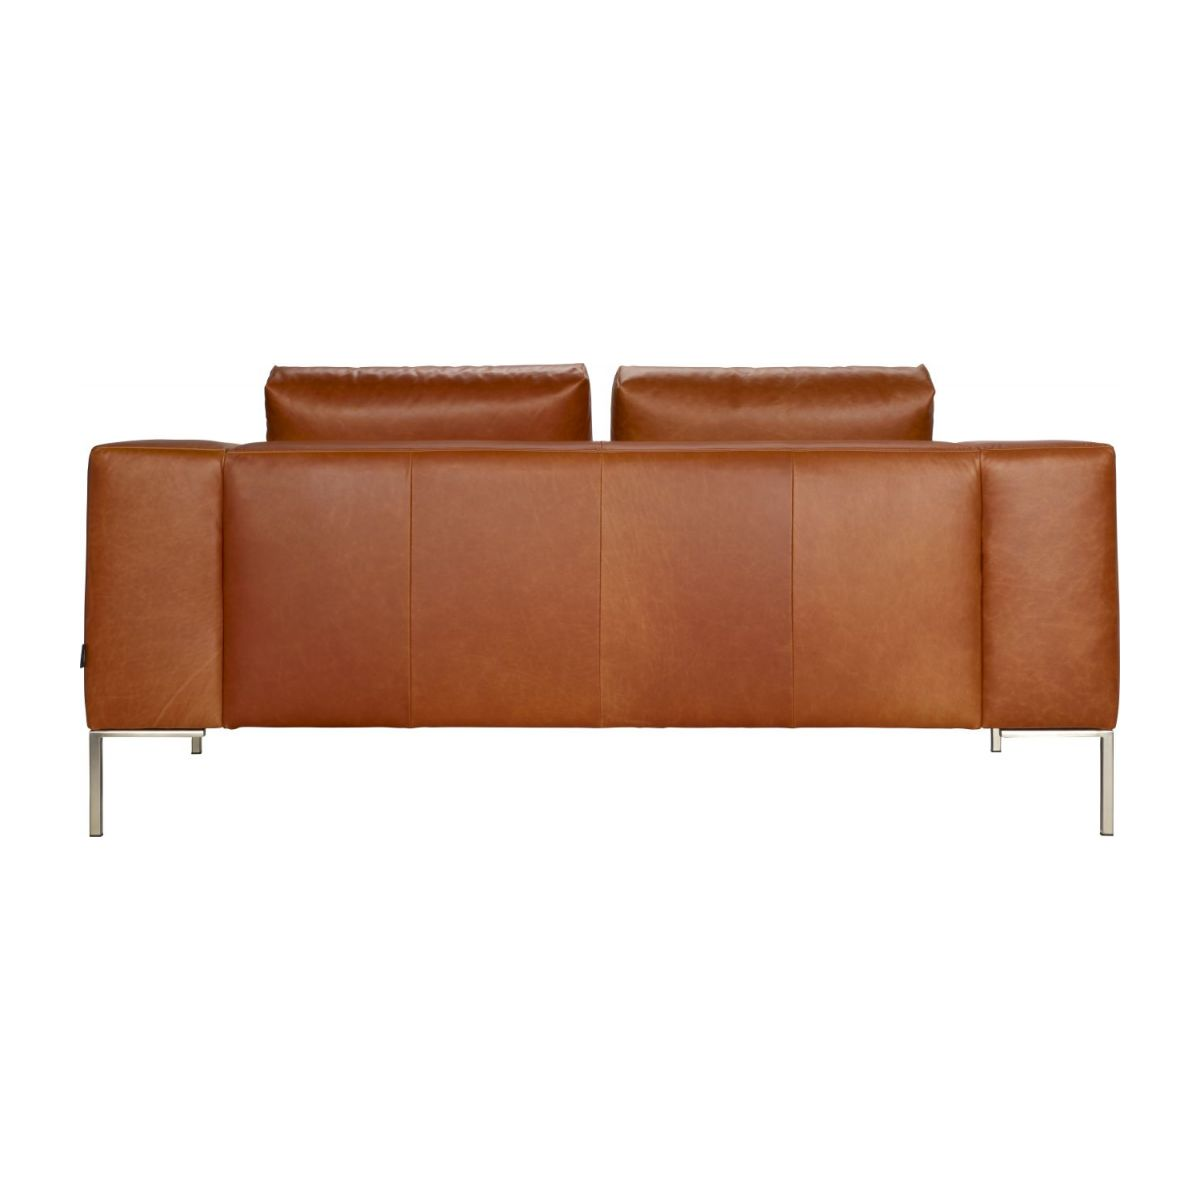 2 seater sofa in Vintage aniline leather, old chestnut n°5